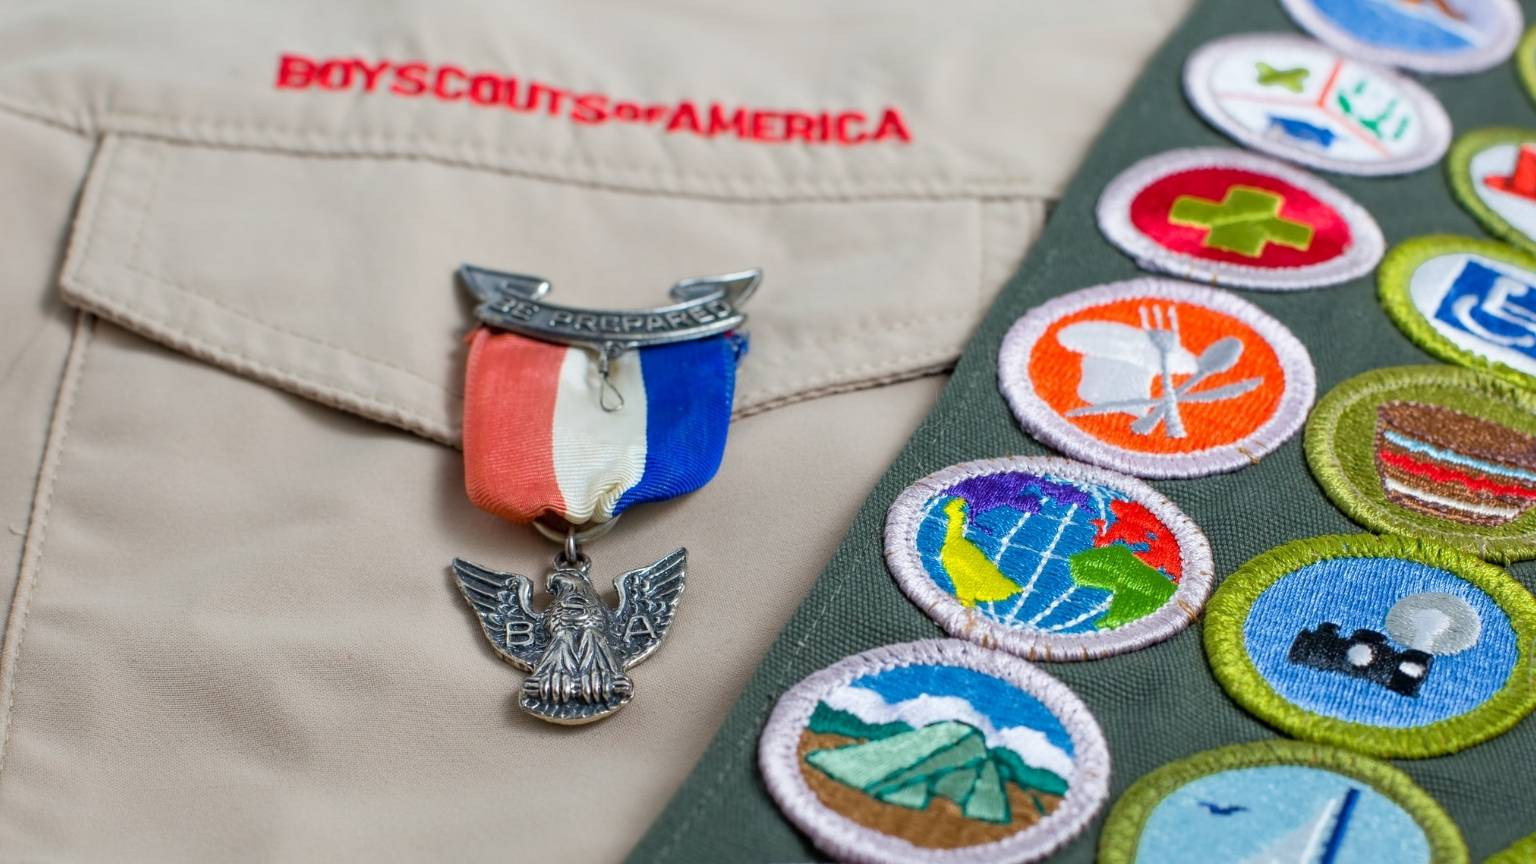 Eagle Scout pin displayed on a Boy Scout uniform